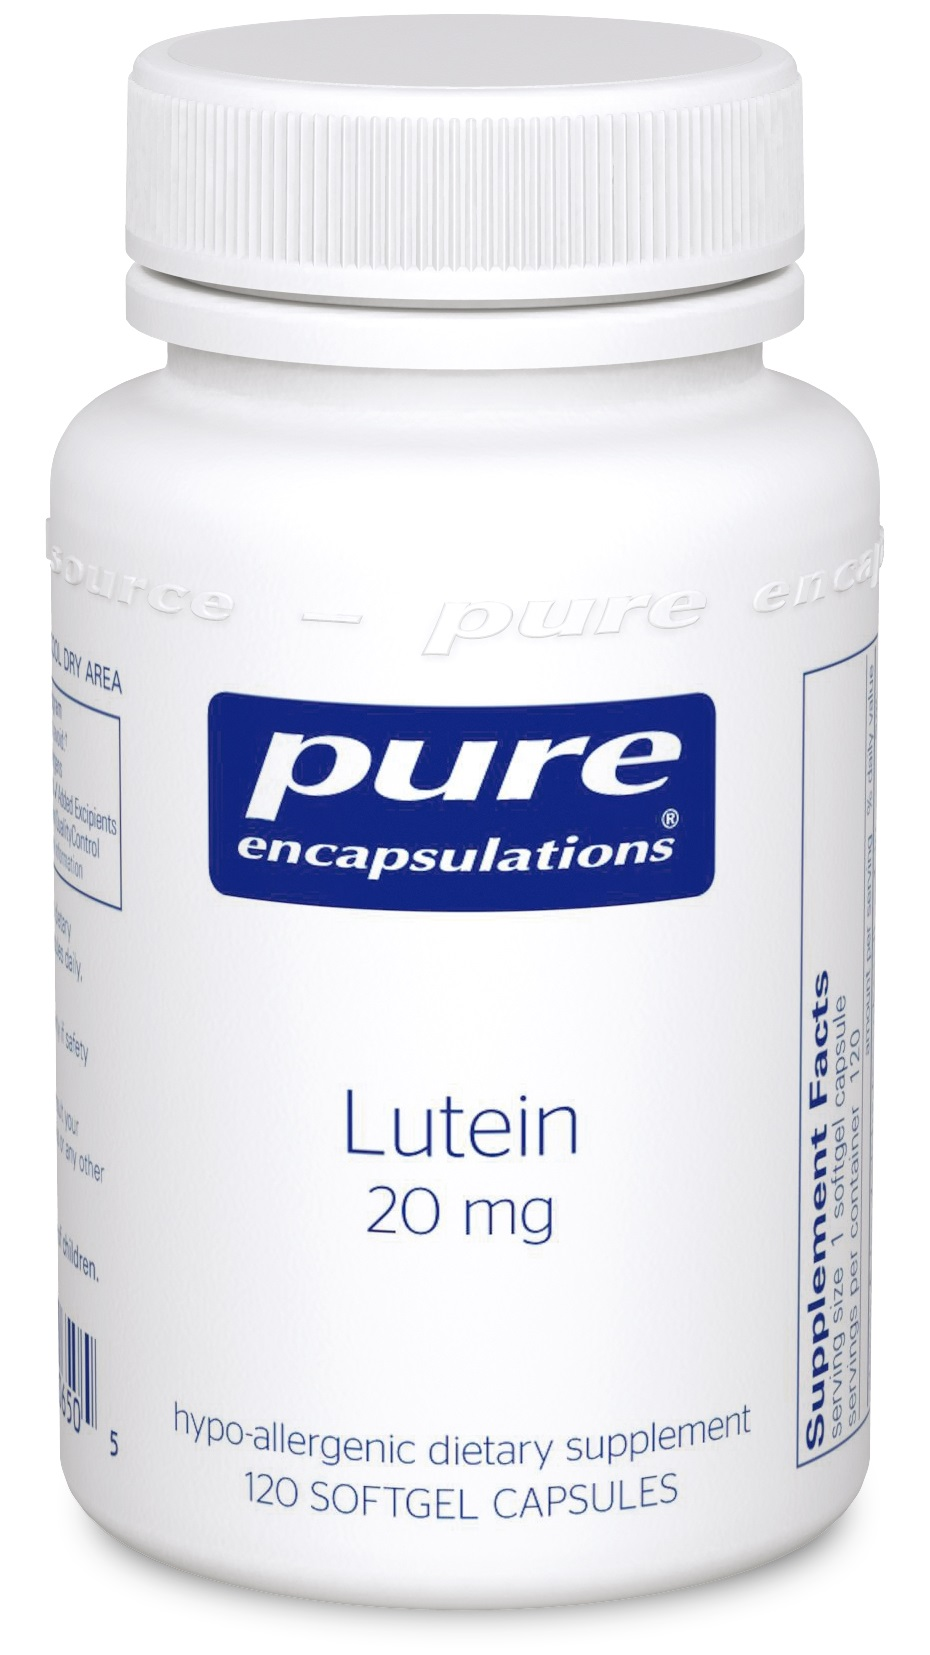 Pure Encapsulations Lutein 20 mg